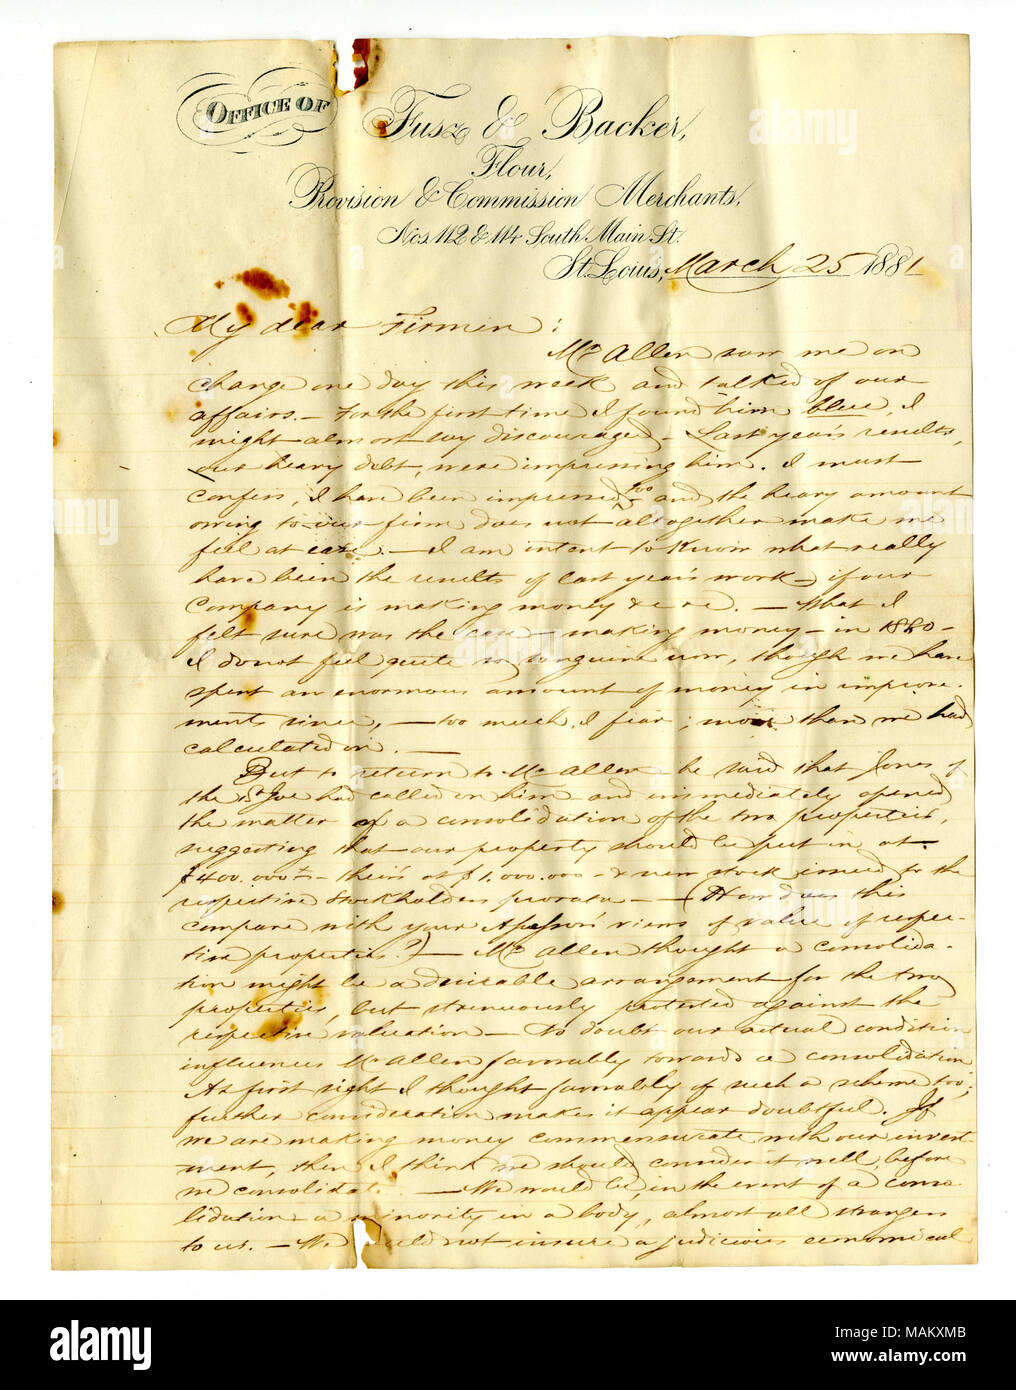 Regarding discussing a proposed merger of the St. Joseph and Desloge Mine Companies. Title: Letter signed Louis Fusz, Fusz and Backer, Flour, Provision and Commission Merchants, March 25, 1881  . 25 March 1881. Fusz, Louis Stock Photo